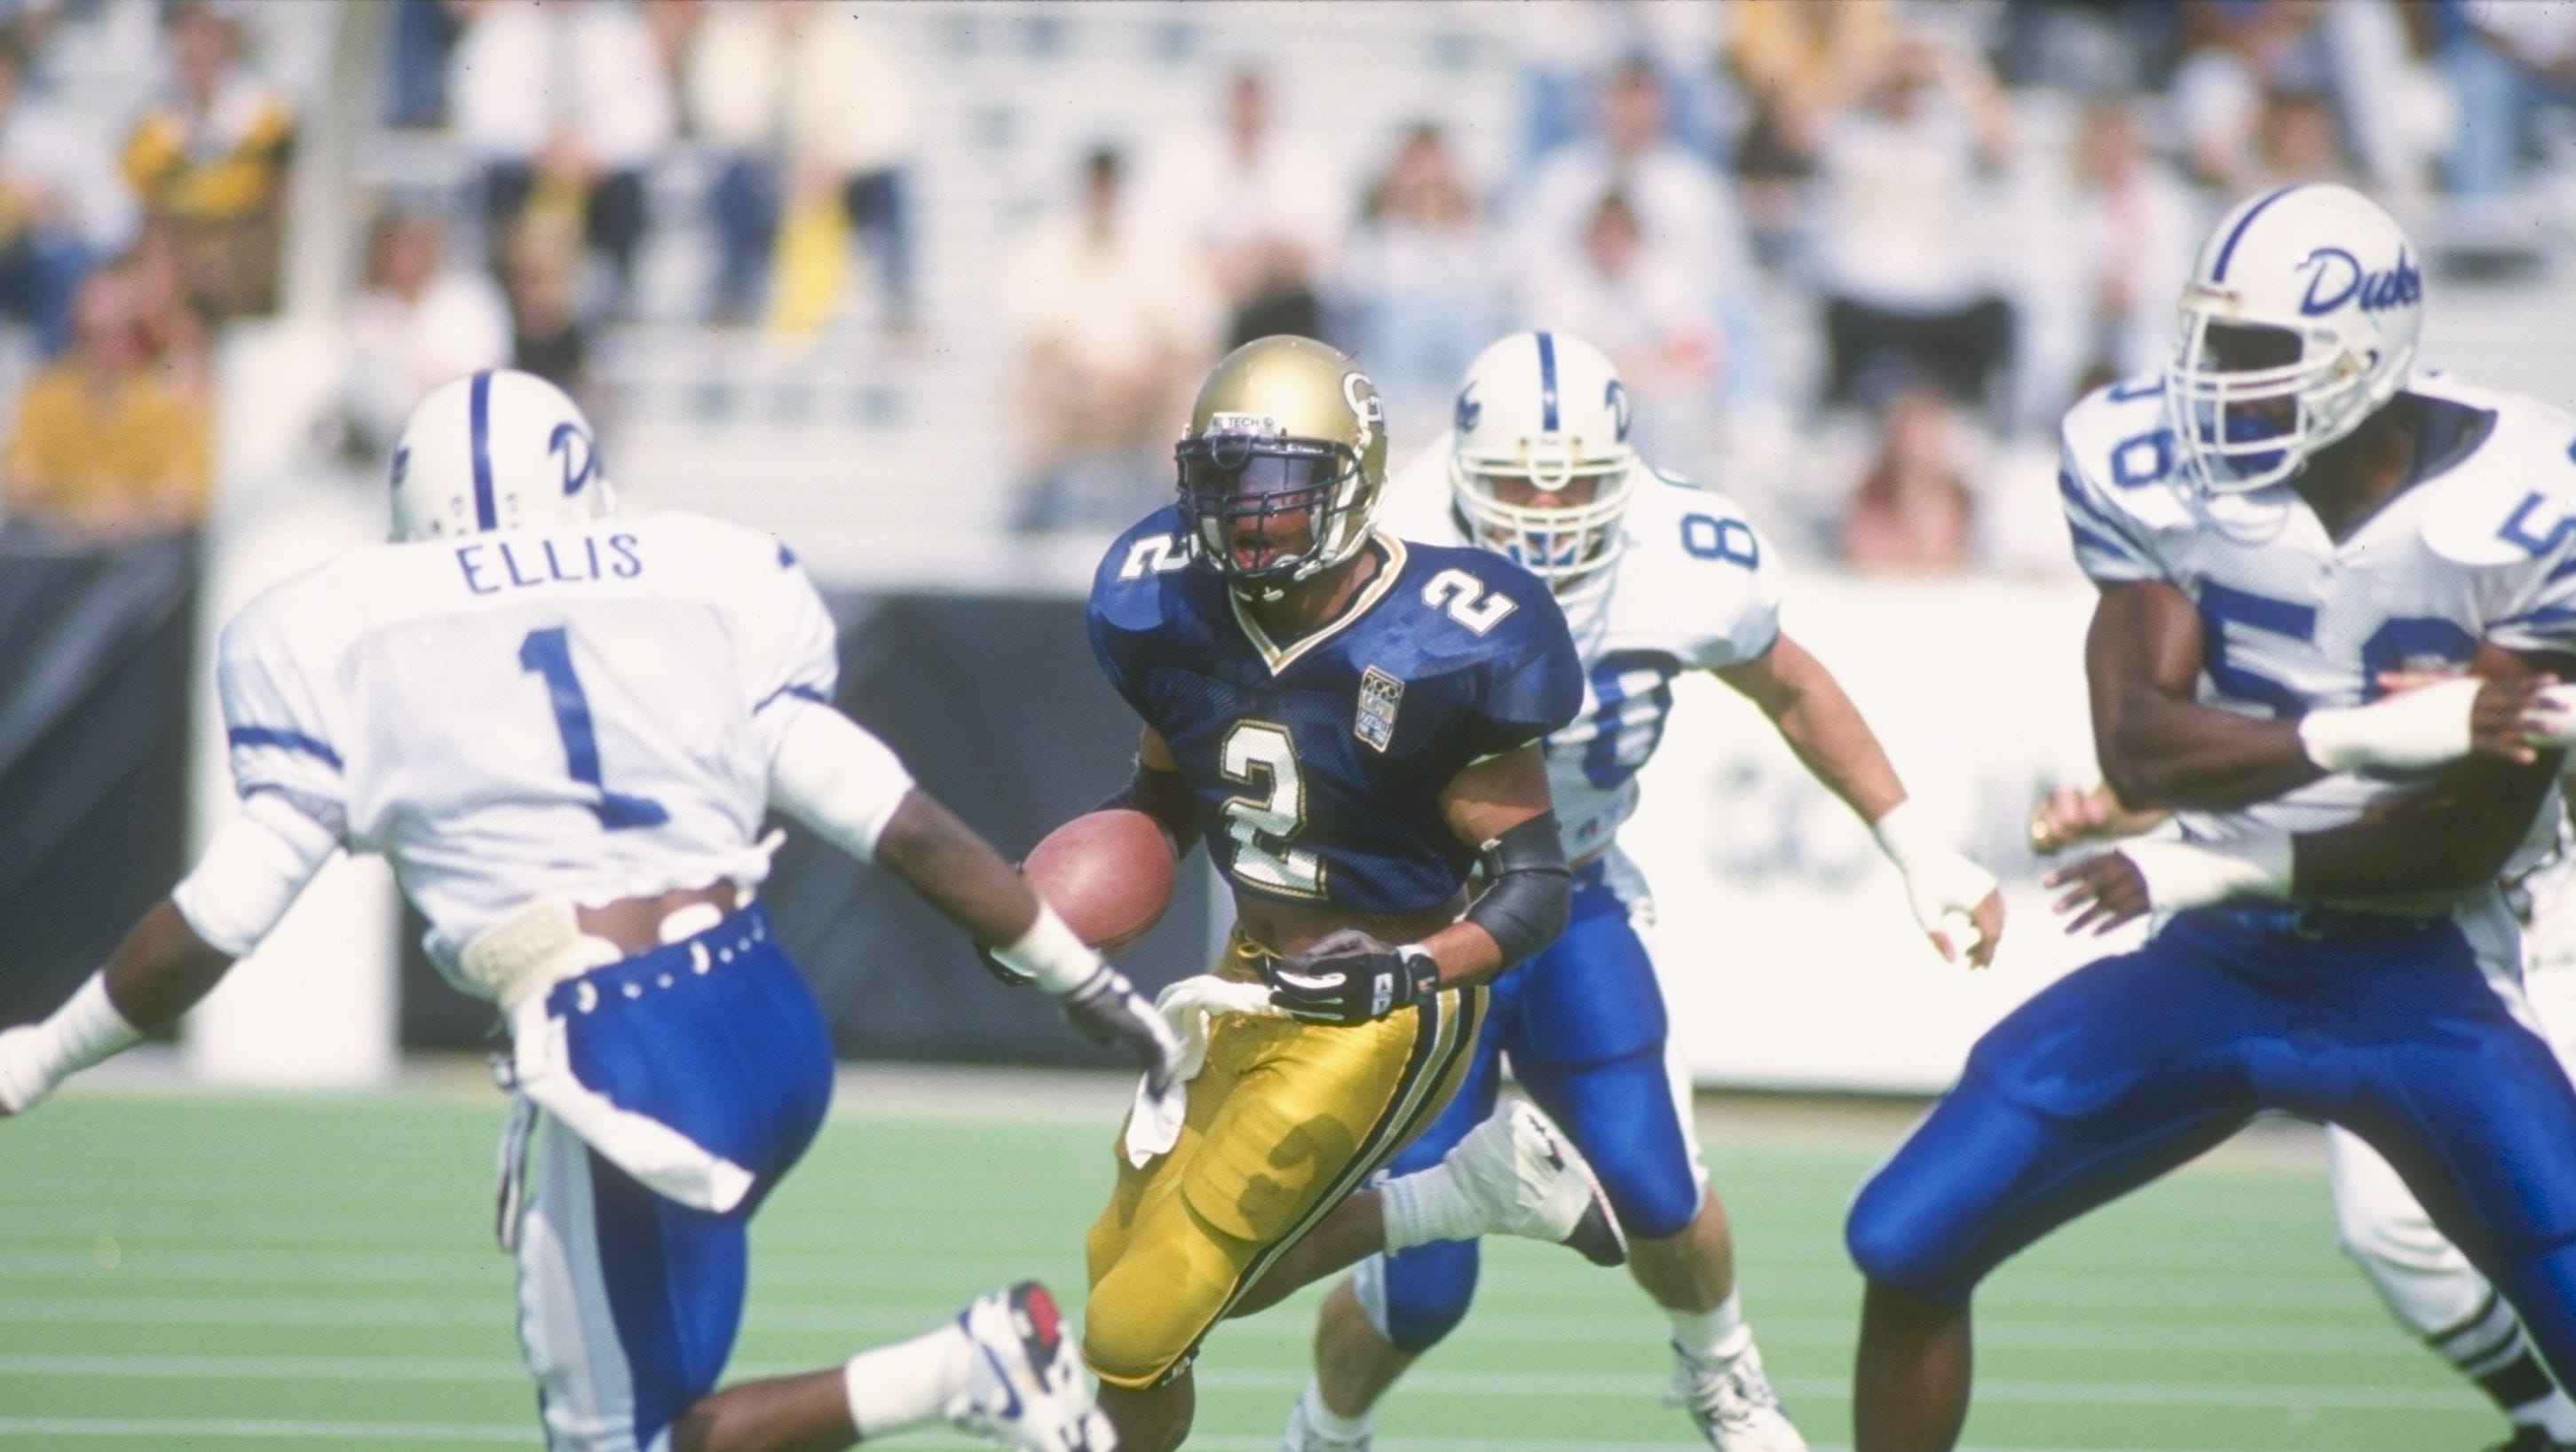 31 Oct 1992: Running back Michael Smith of the Georgia Tech Yellow Jackets runs down the field during a game against the Duke Blue Devils at Bobby Dodd Stadium in Atlanta, Georgia. Georgia Tech won the game 20-17.